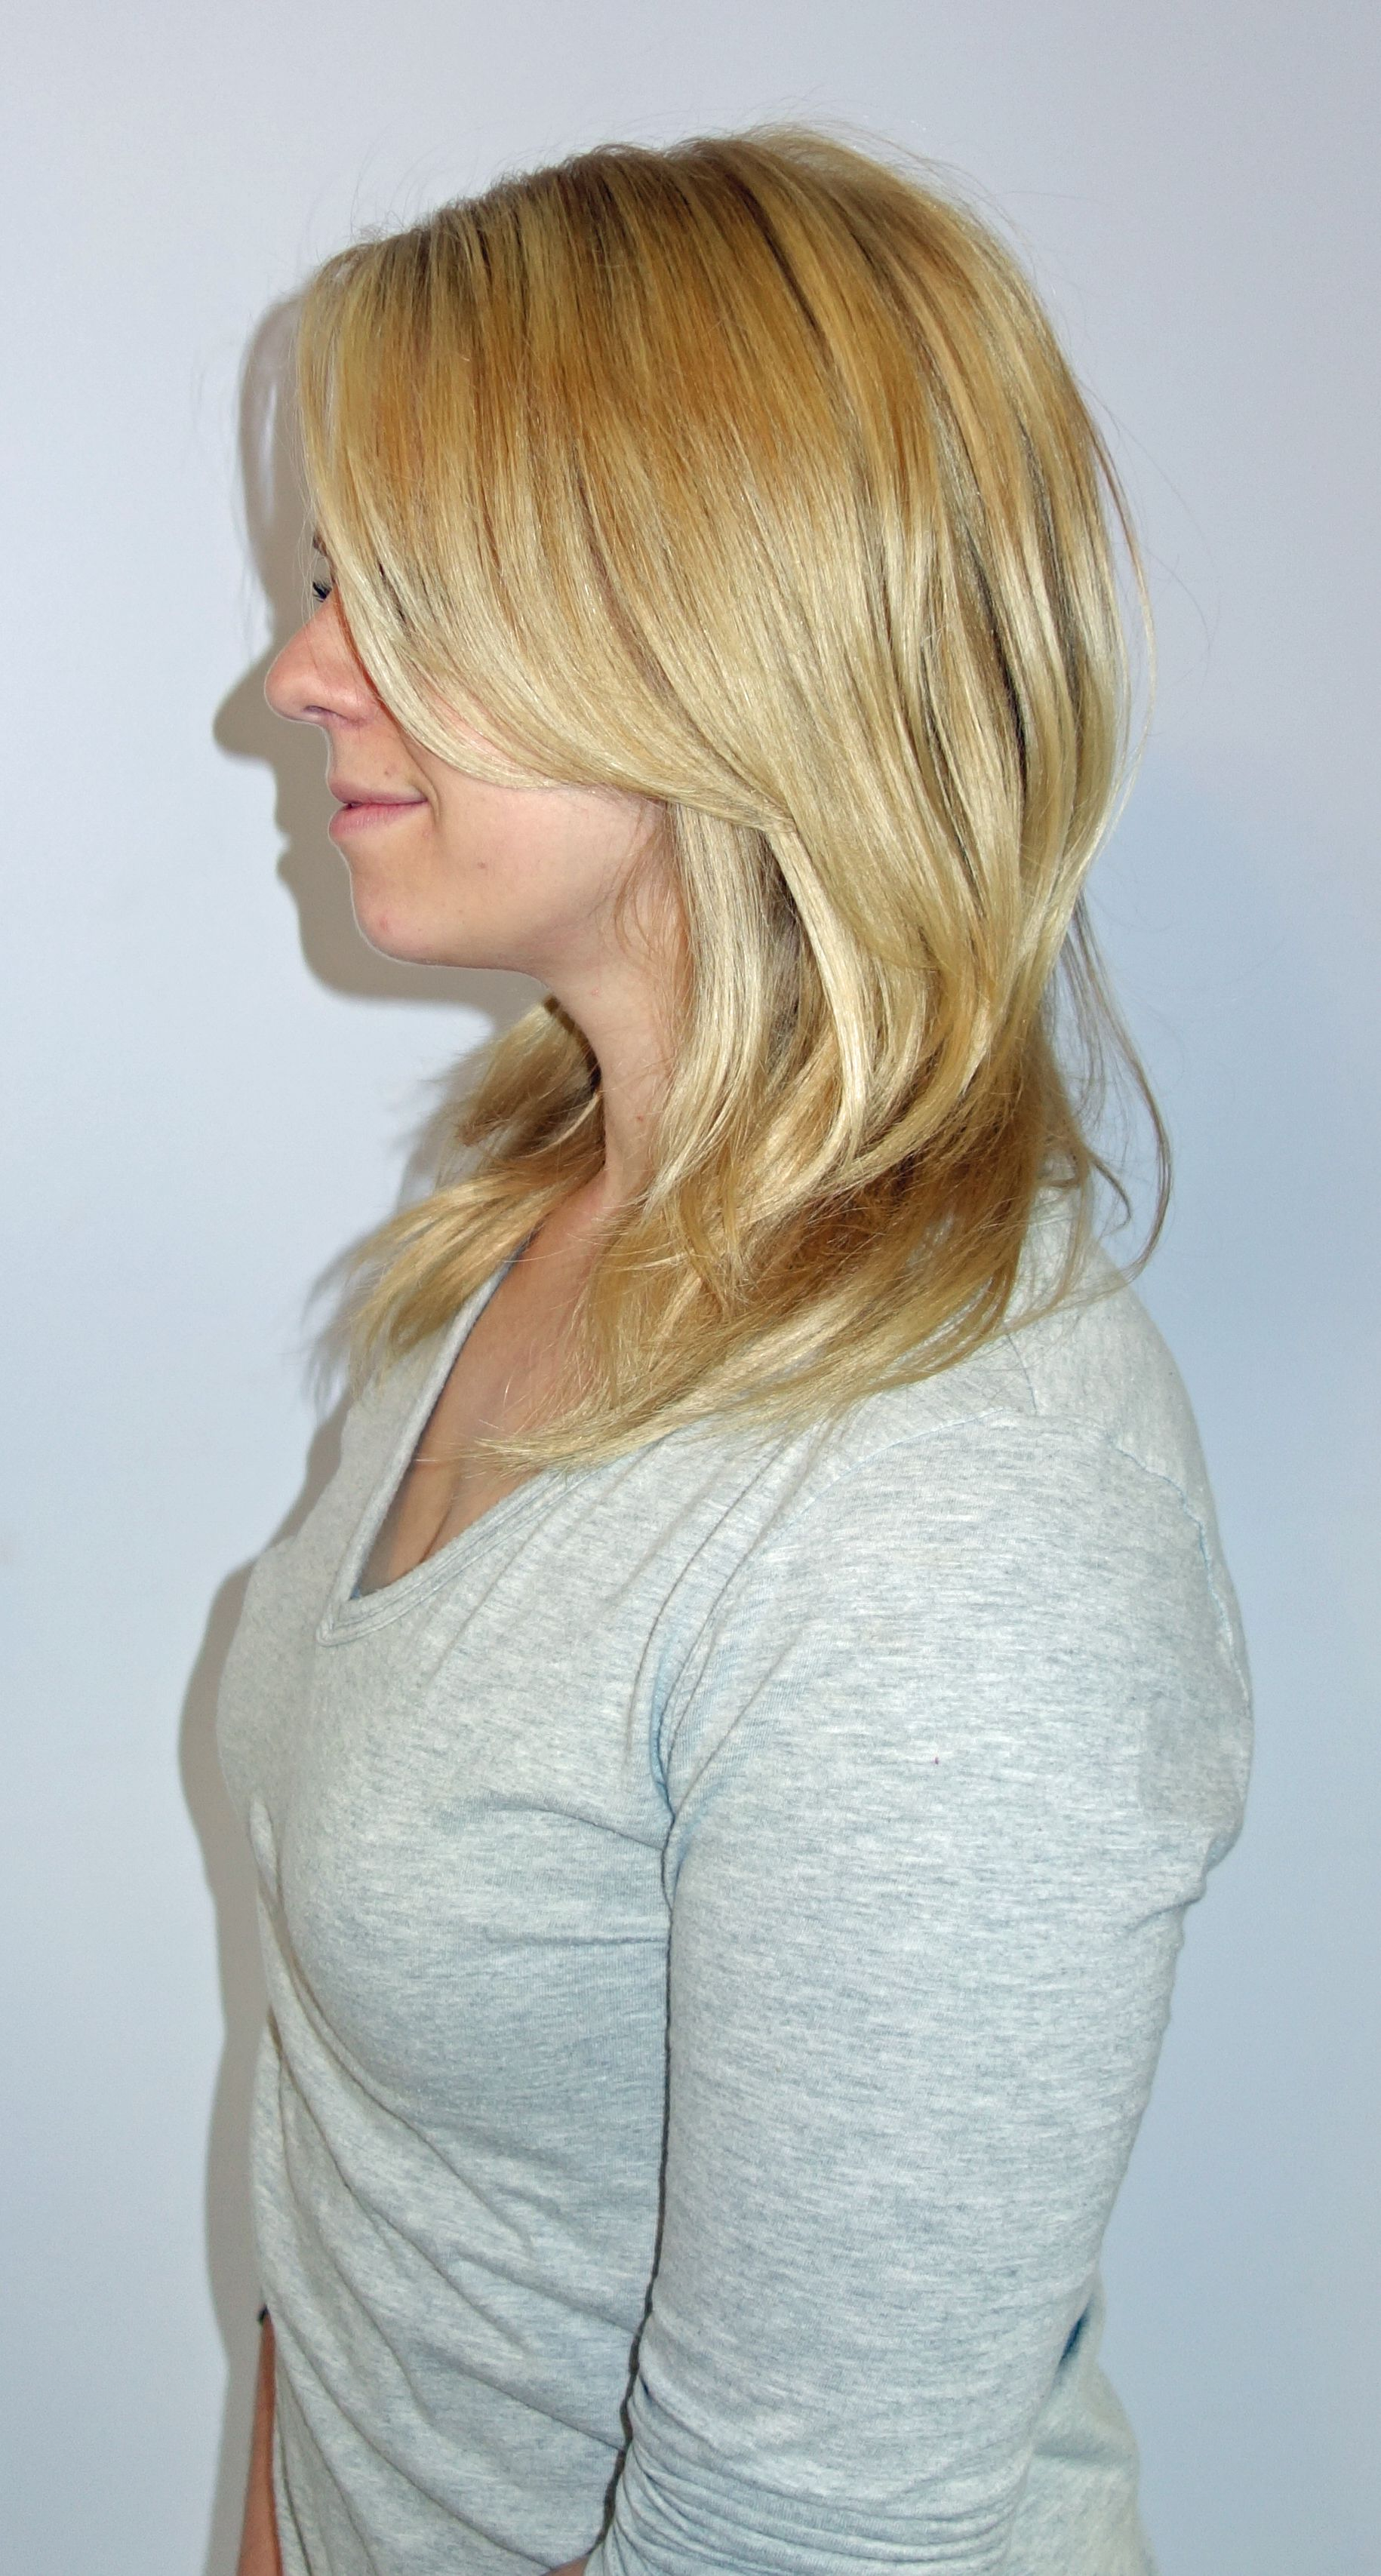 Before Hotheads Hair Extensions By Rhonda At Roca Salon Spa In